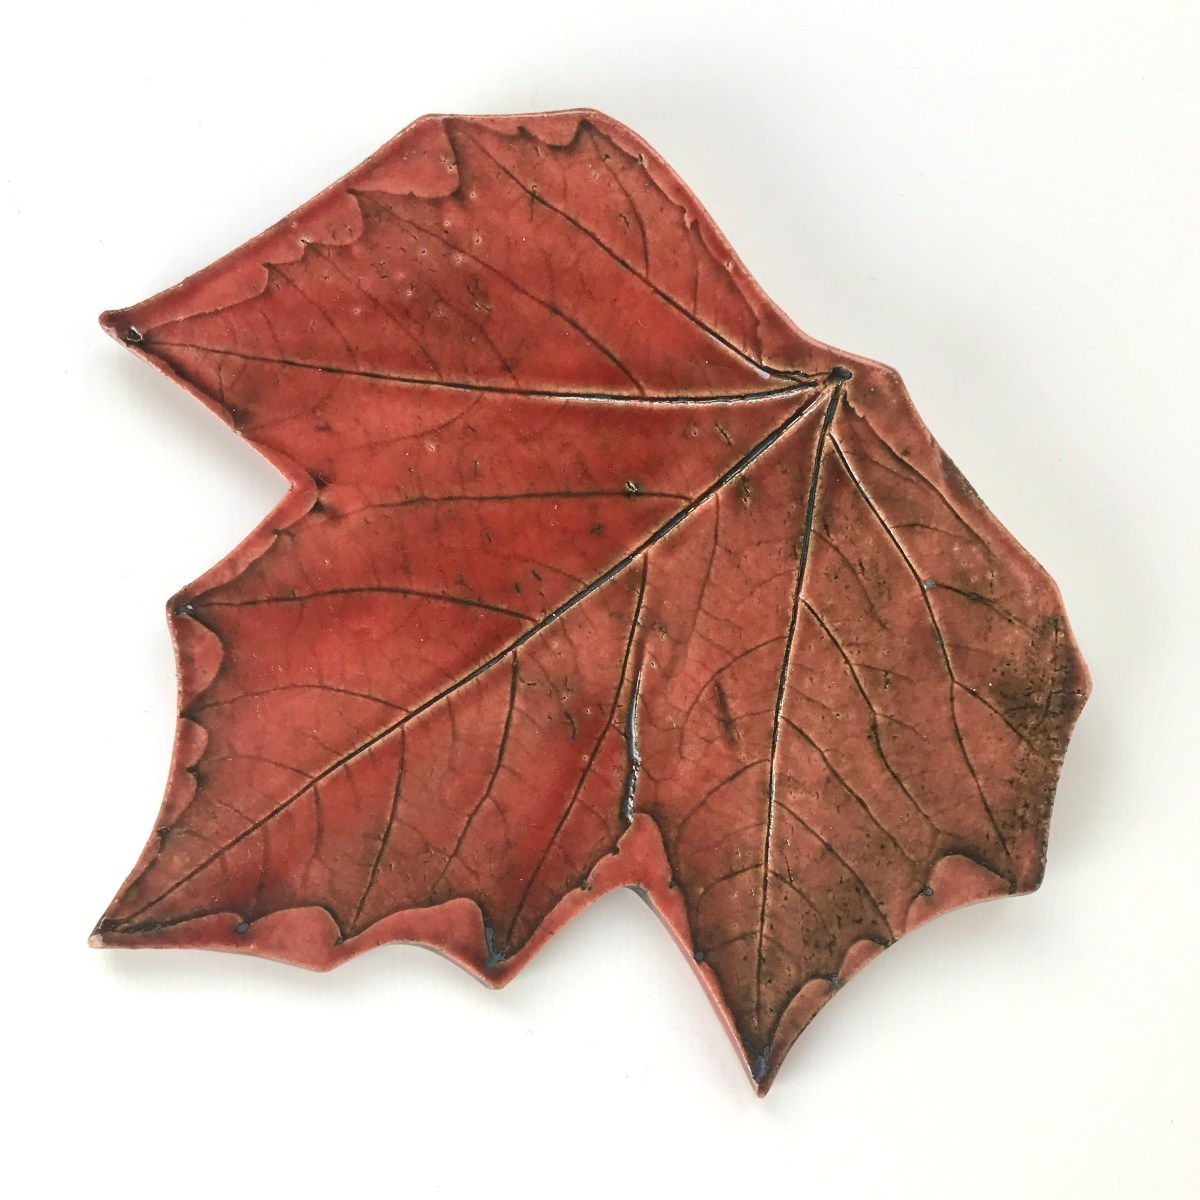 Fallen Leaf Ceramic Wall Art by Sonya Ceramic Art - Red Autumn Sycamore Design